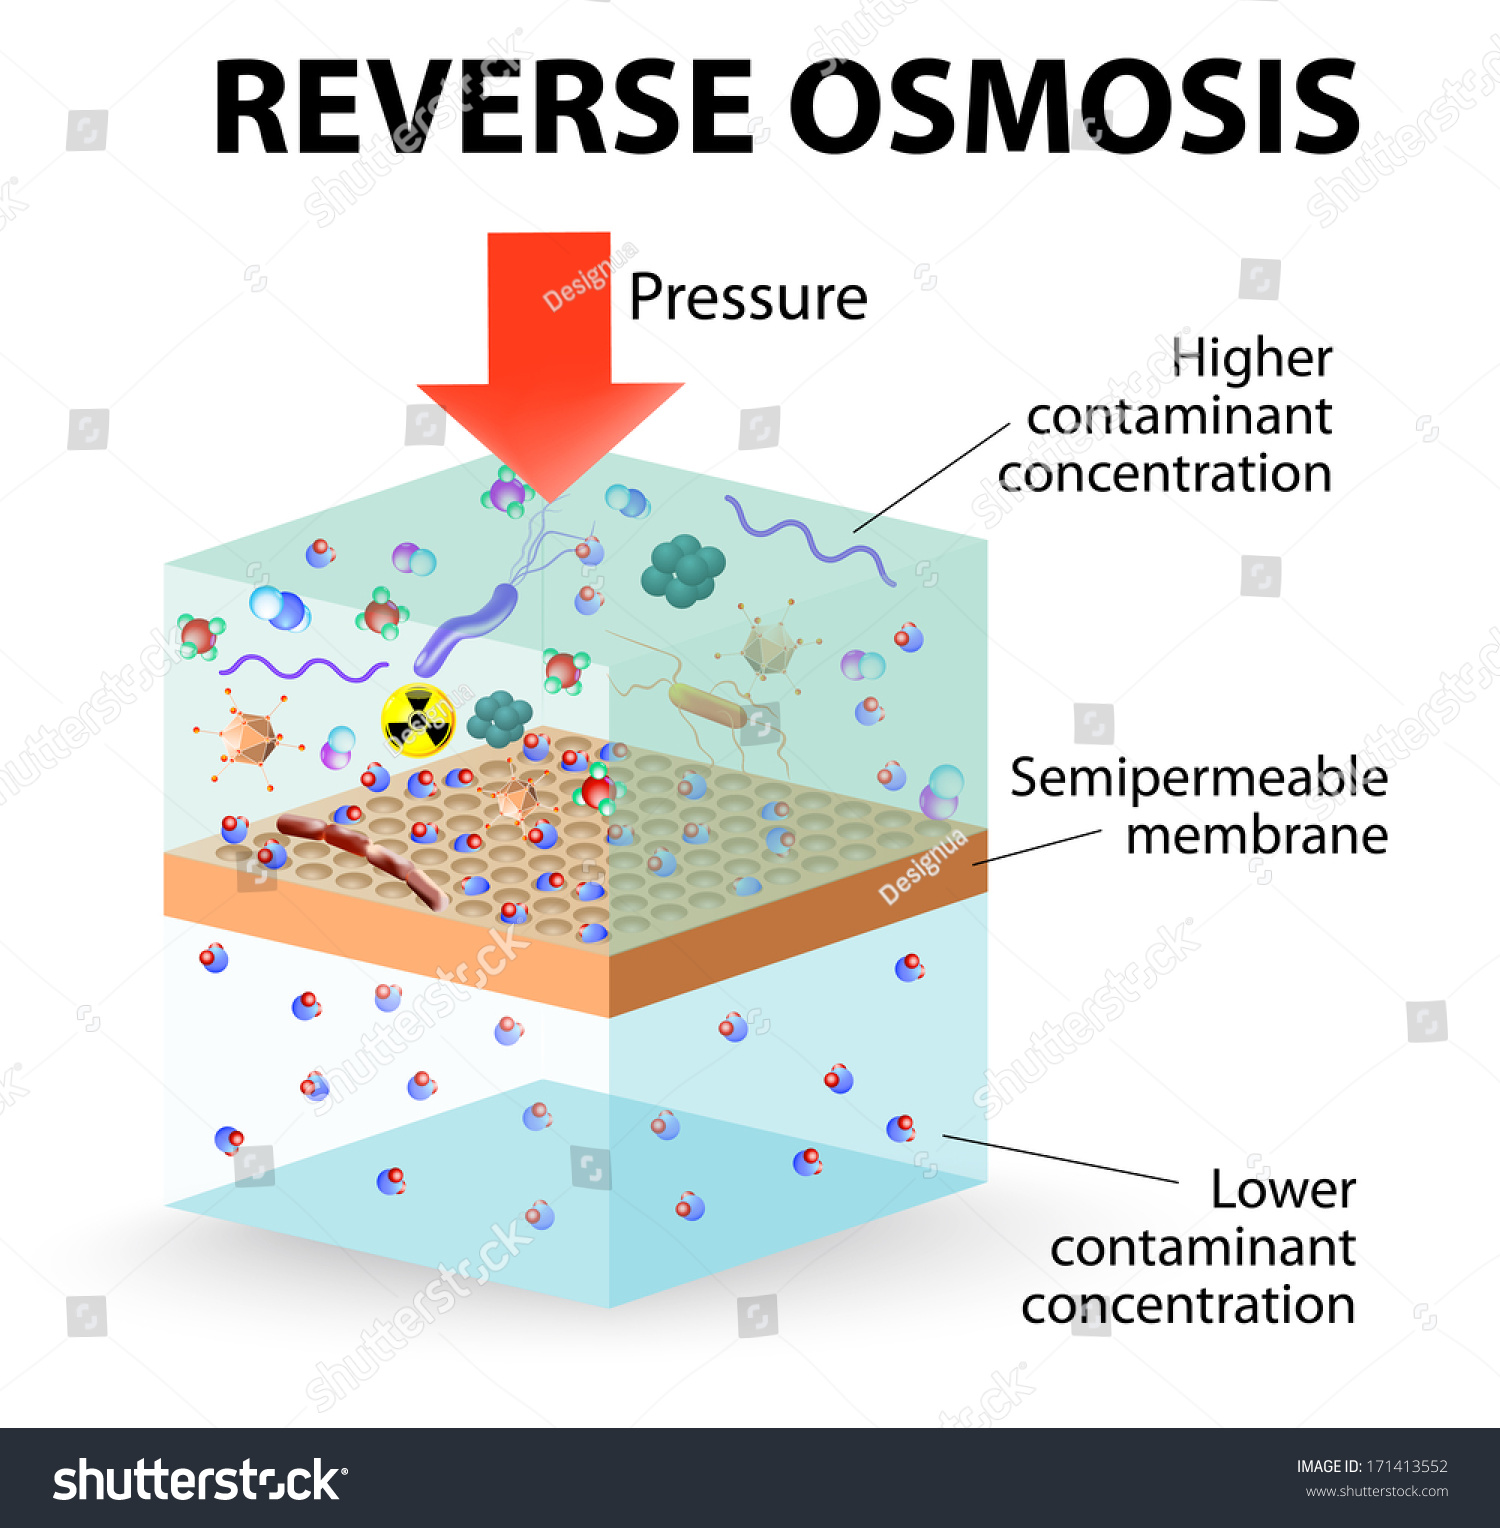 Reverse Osmosis Use Membrane Act Like Stock Vector